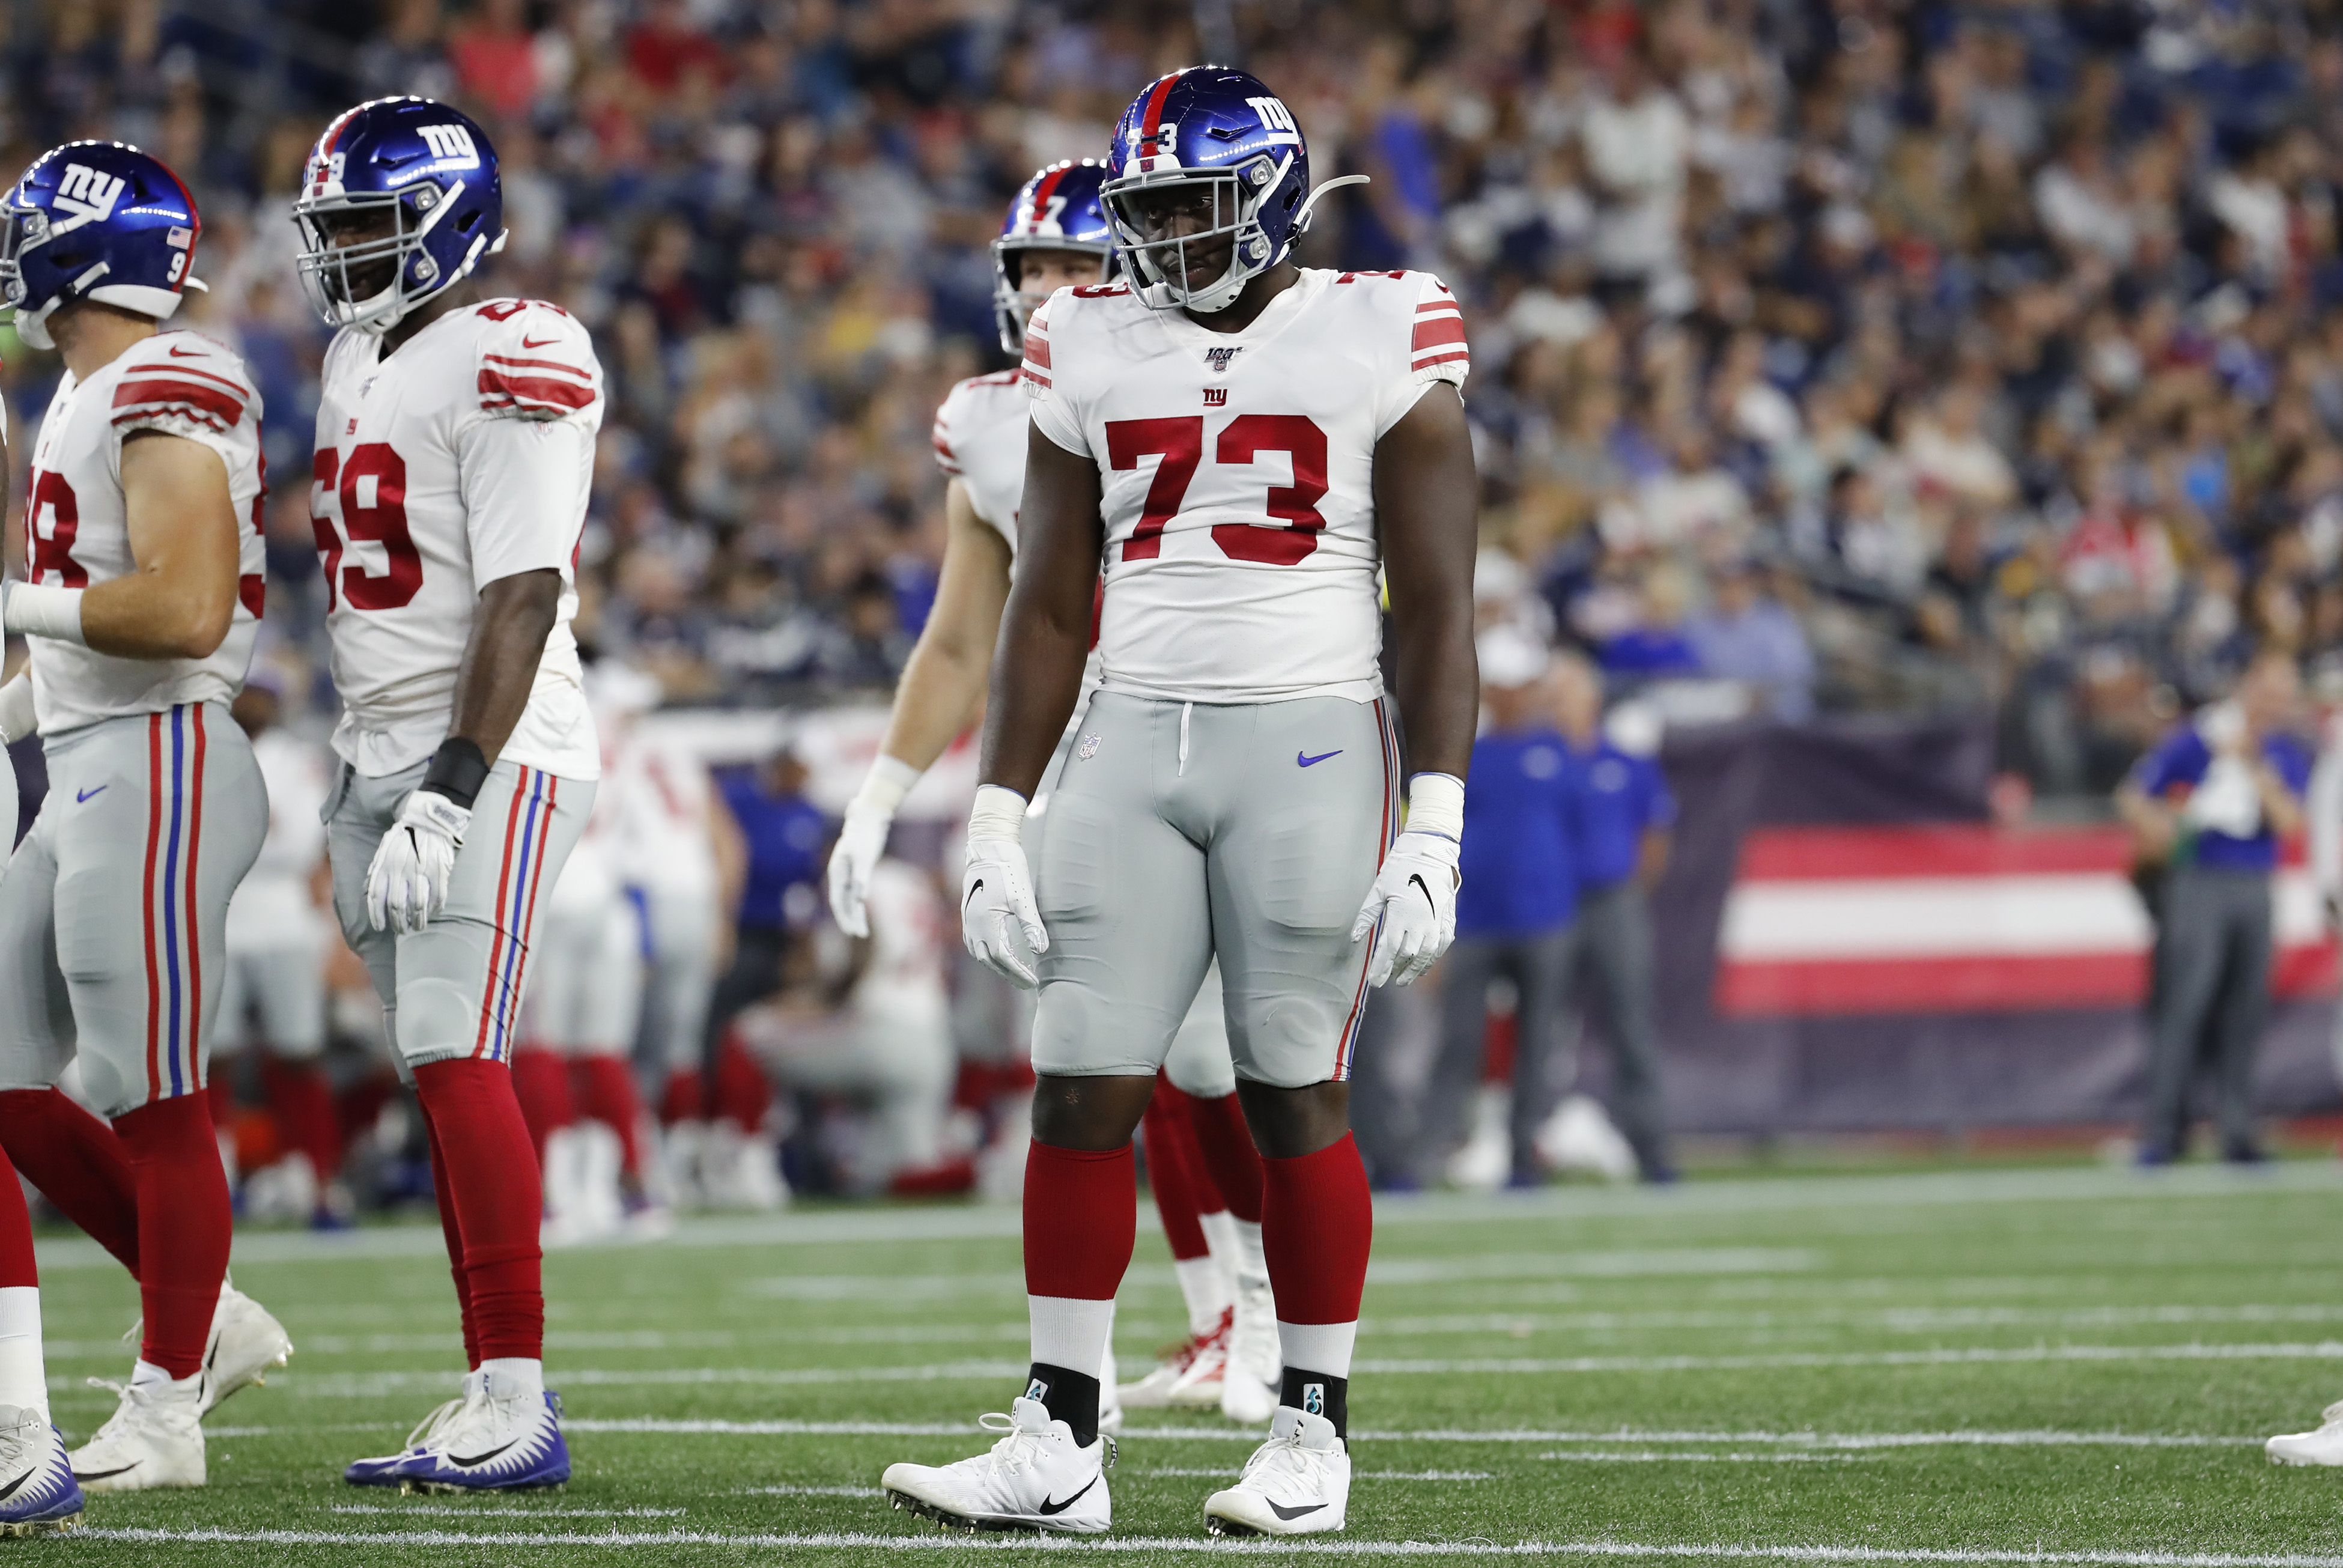 NFL: AUG 29 Preseason - Giants at Patriots